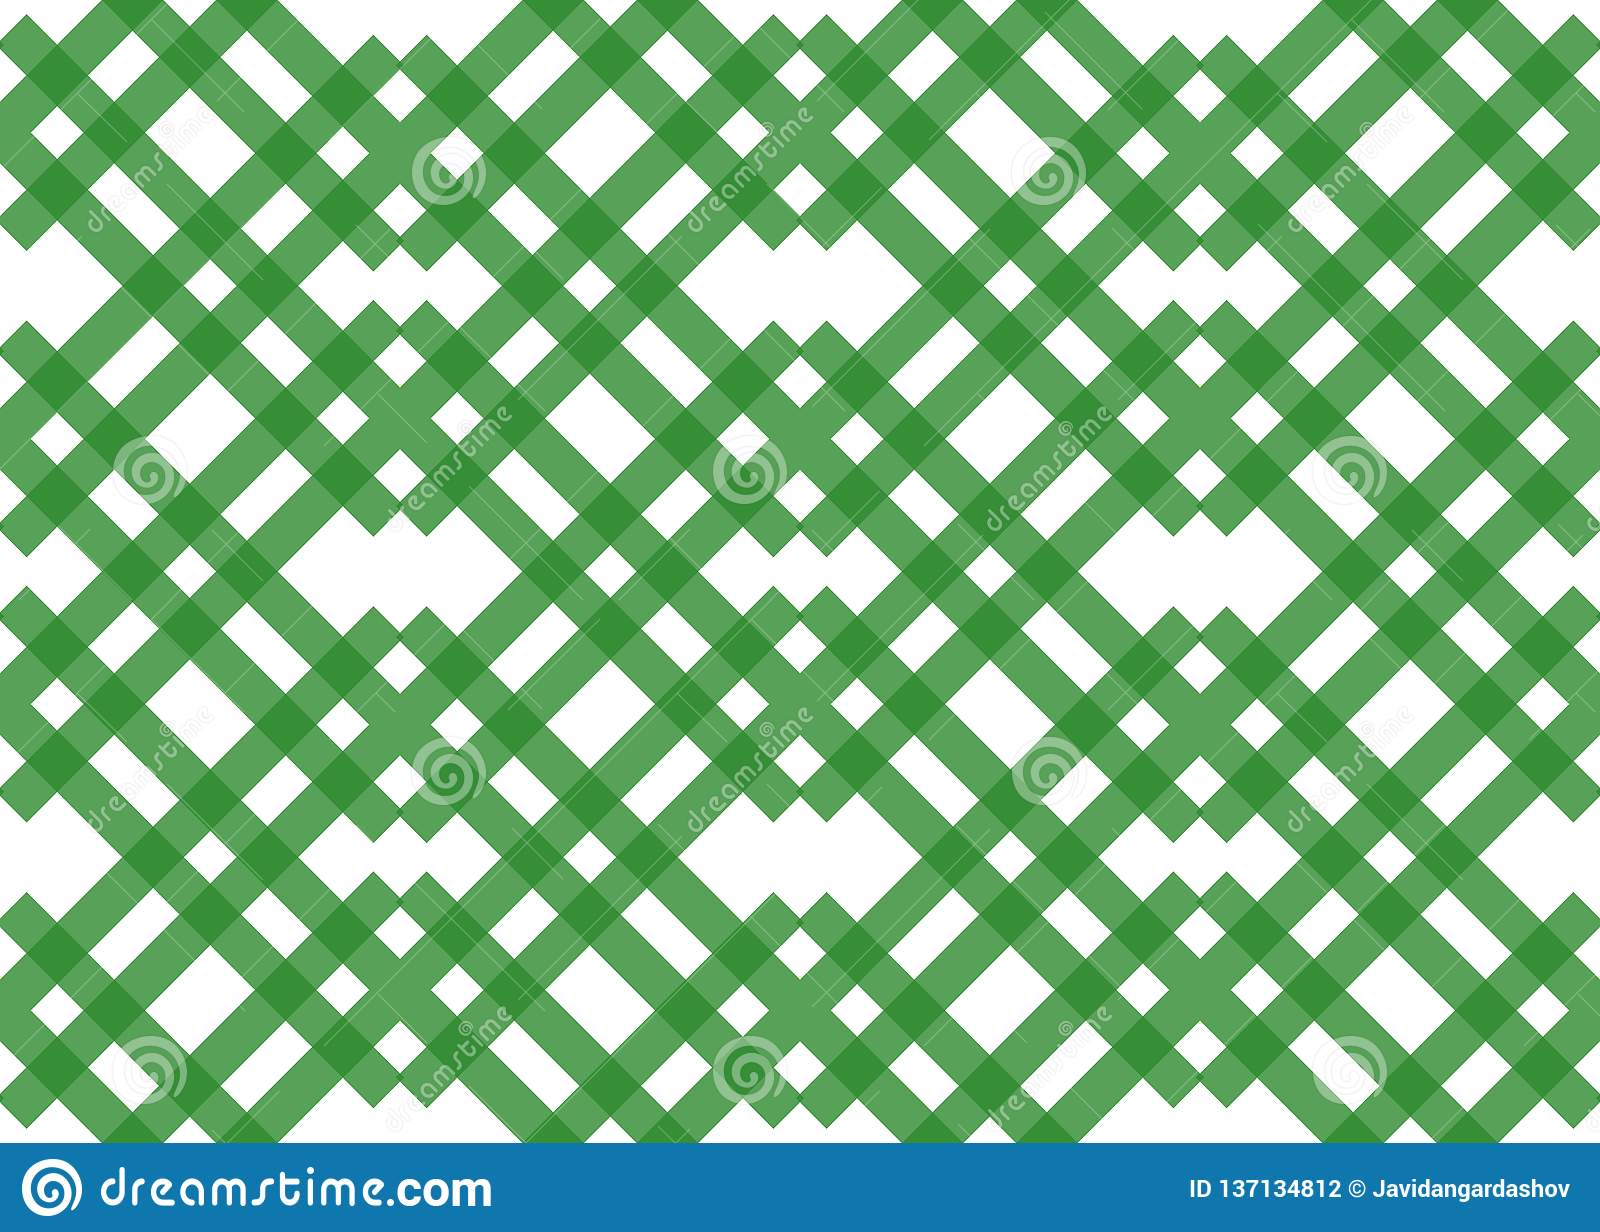 Background pattern stripe seamless vector texture green aqua pastel colors. Wallpaper backdrop diagonal striped abstract